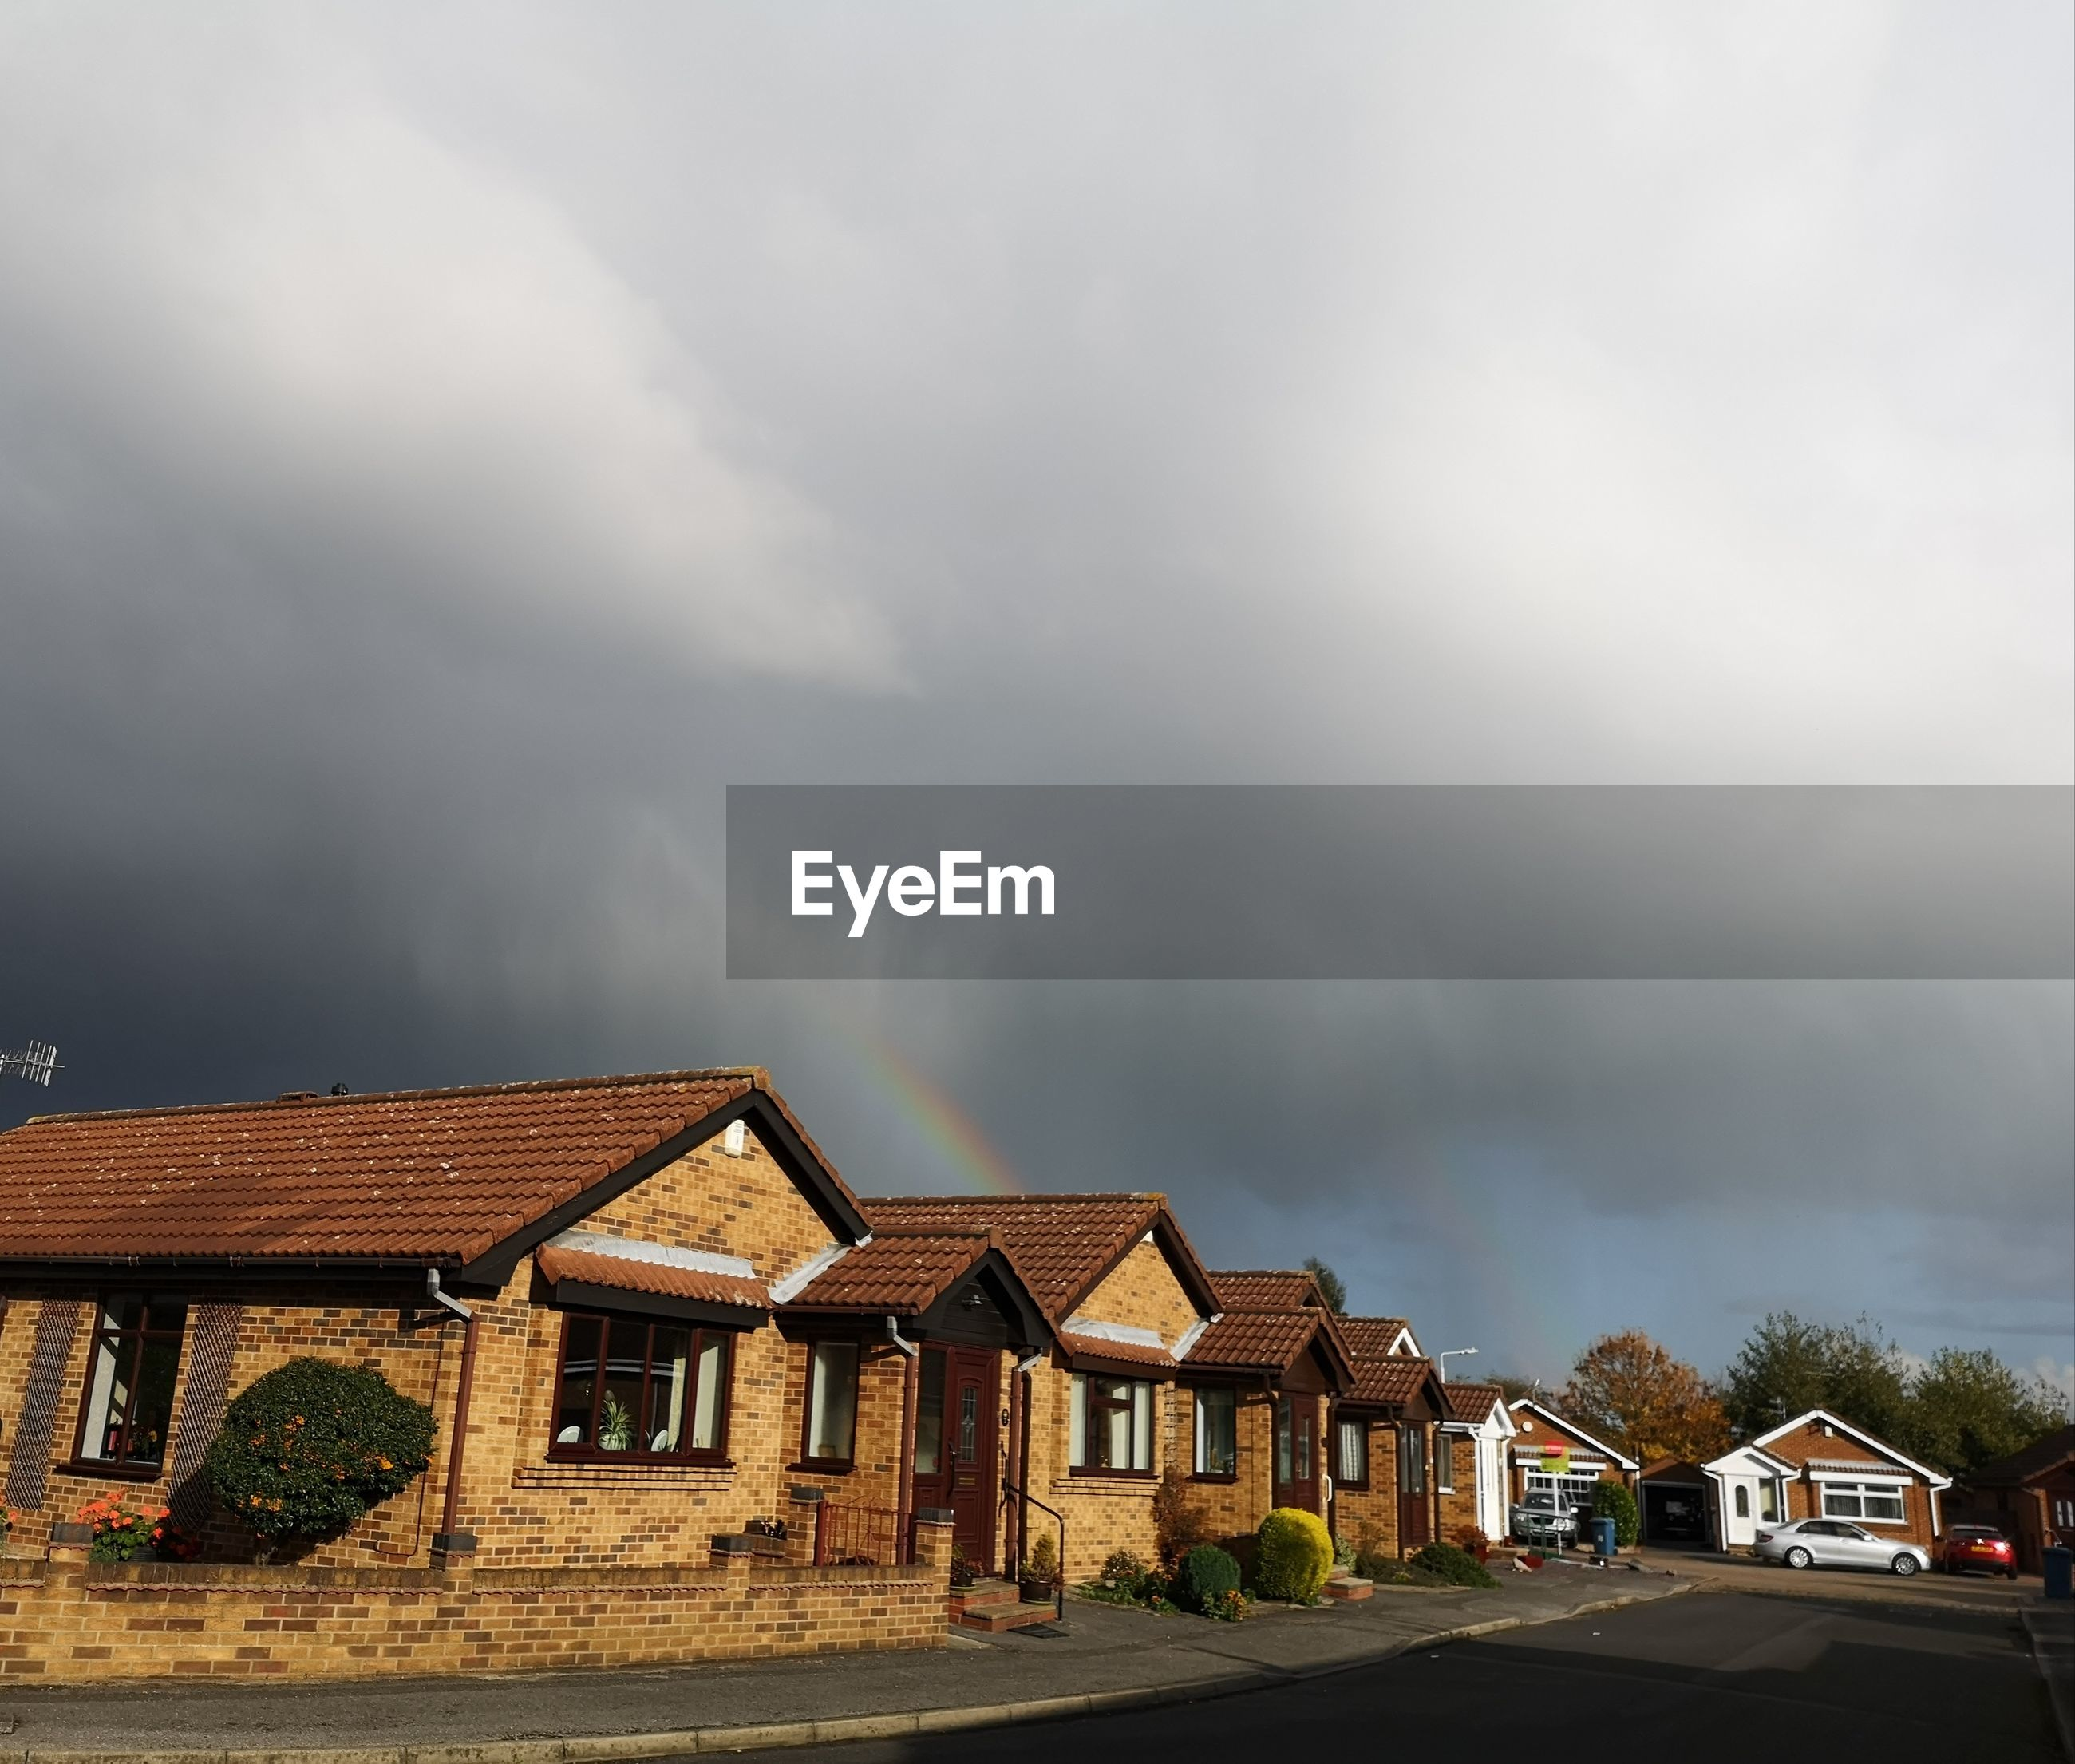 HOUSES BY ROAD AGAINST STORM CLOUDS